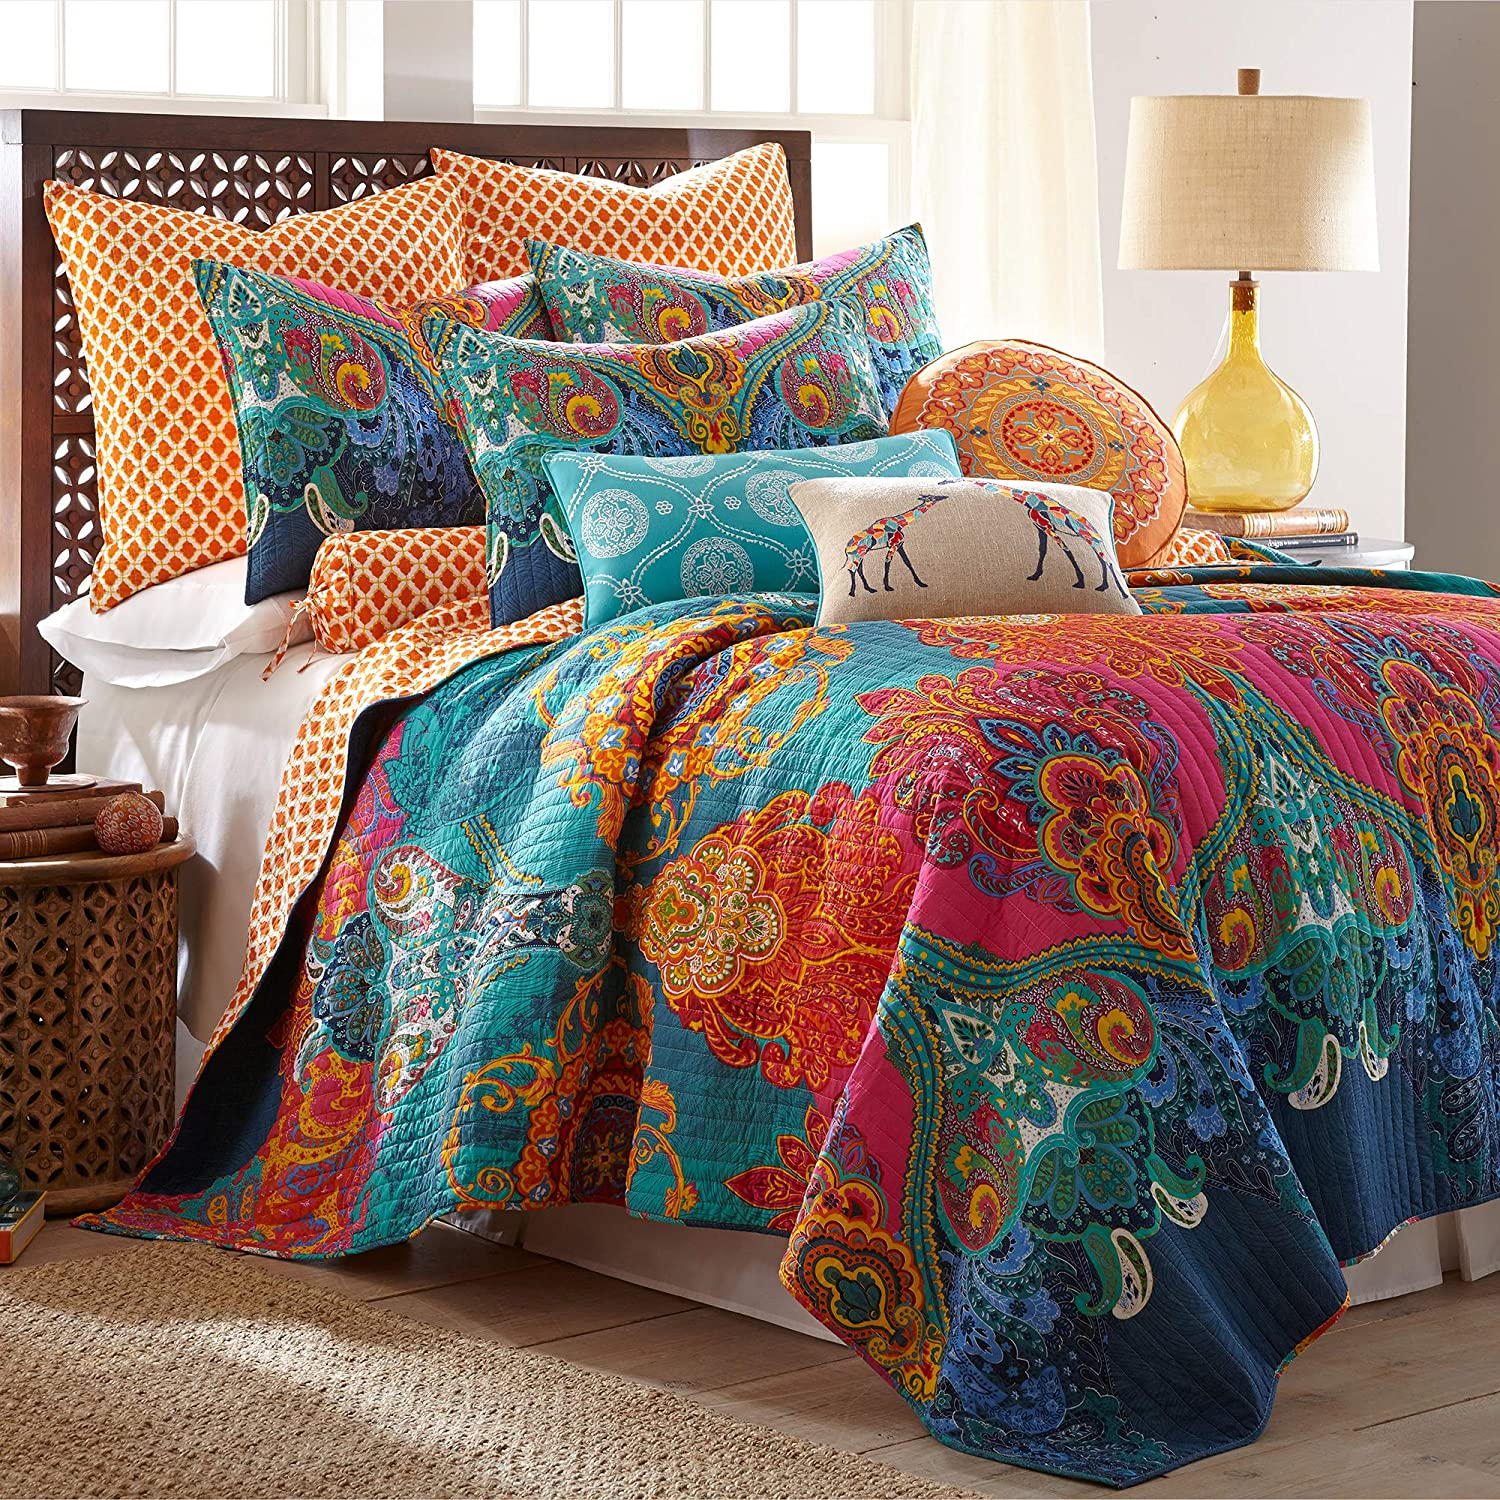 Levtex Home - Mackenzie Quilt Set - King Quilt (106x92in.) + Two Pillow Shams (26x20in.) - Bohemian - Teal, Orange, Yellow, Green, Blue - Reversible - Cotton Fabric